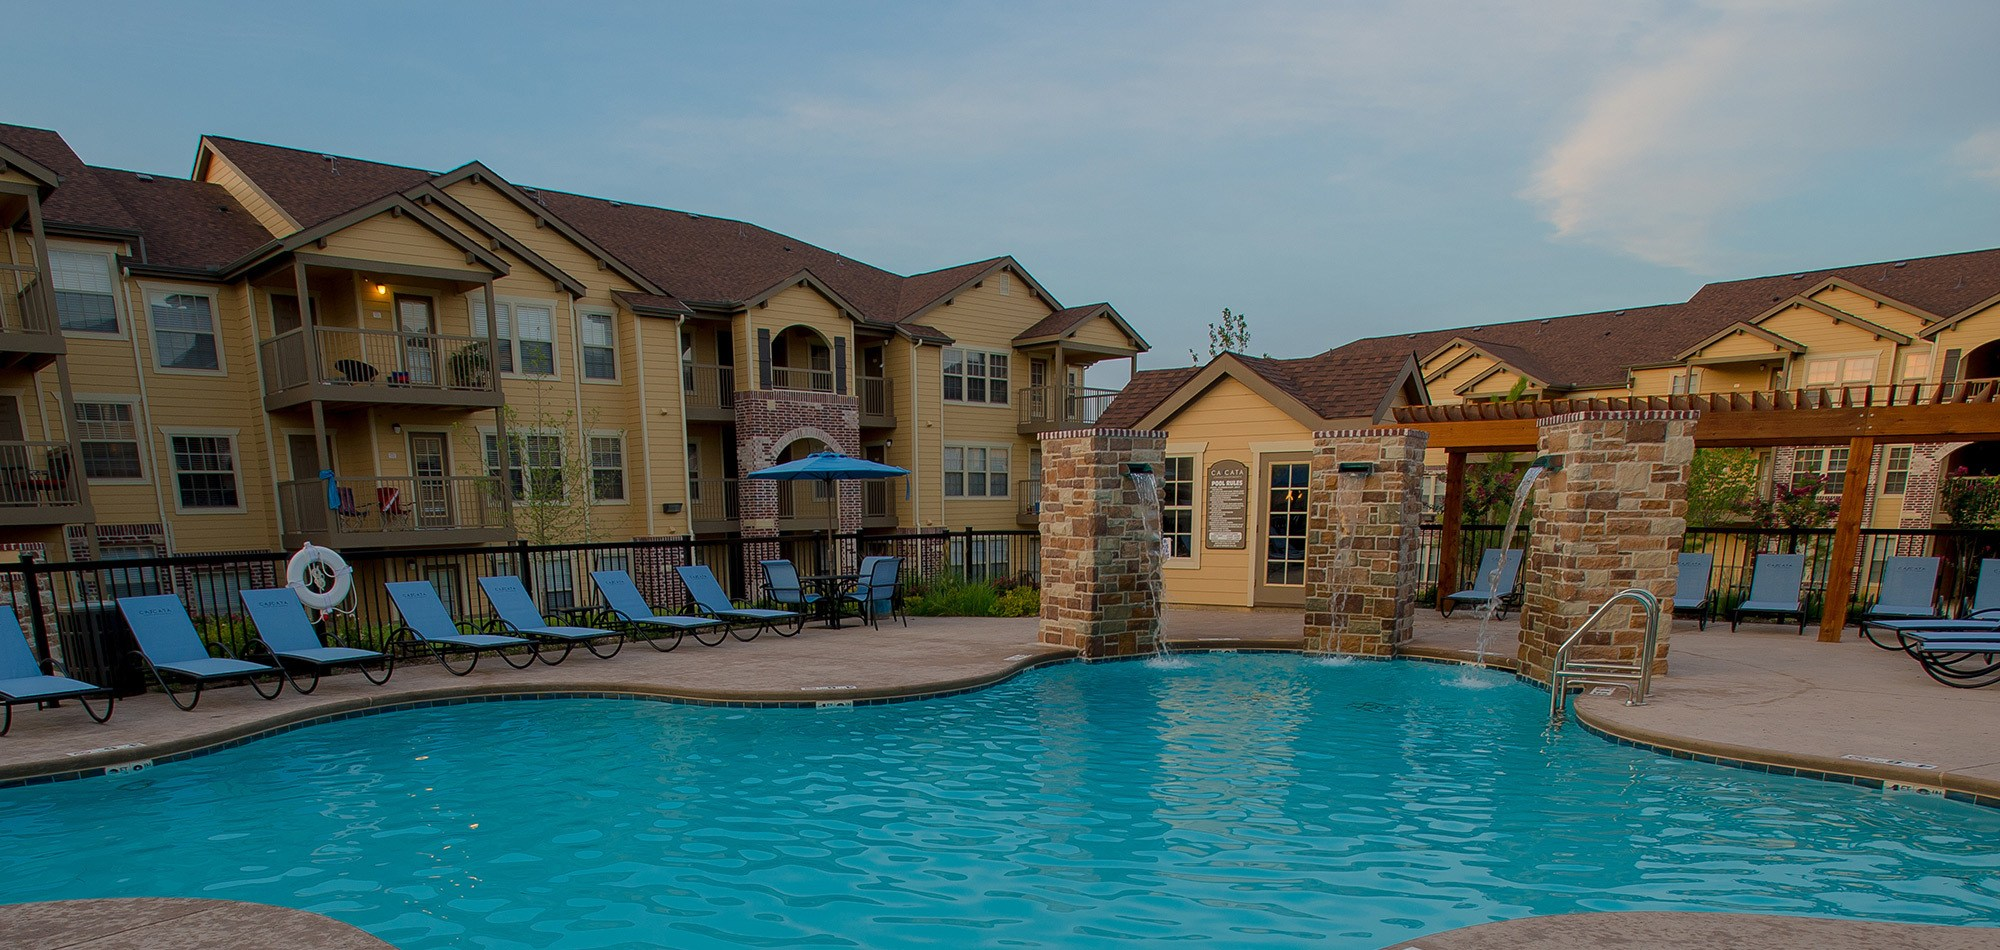 The sparkling swimming pool at our apartments in Tulsa will enchant you